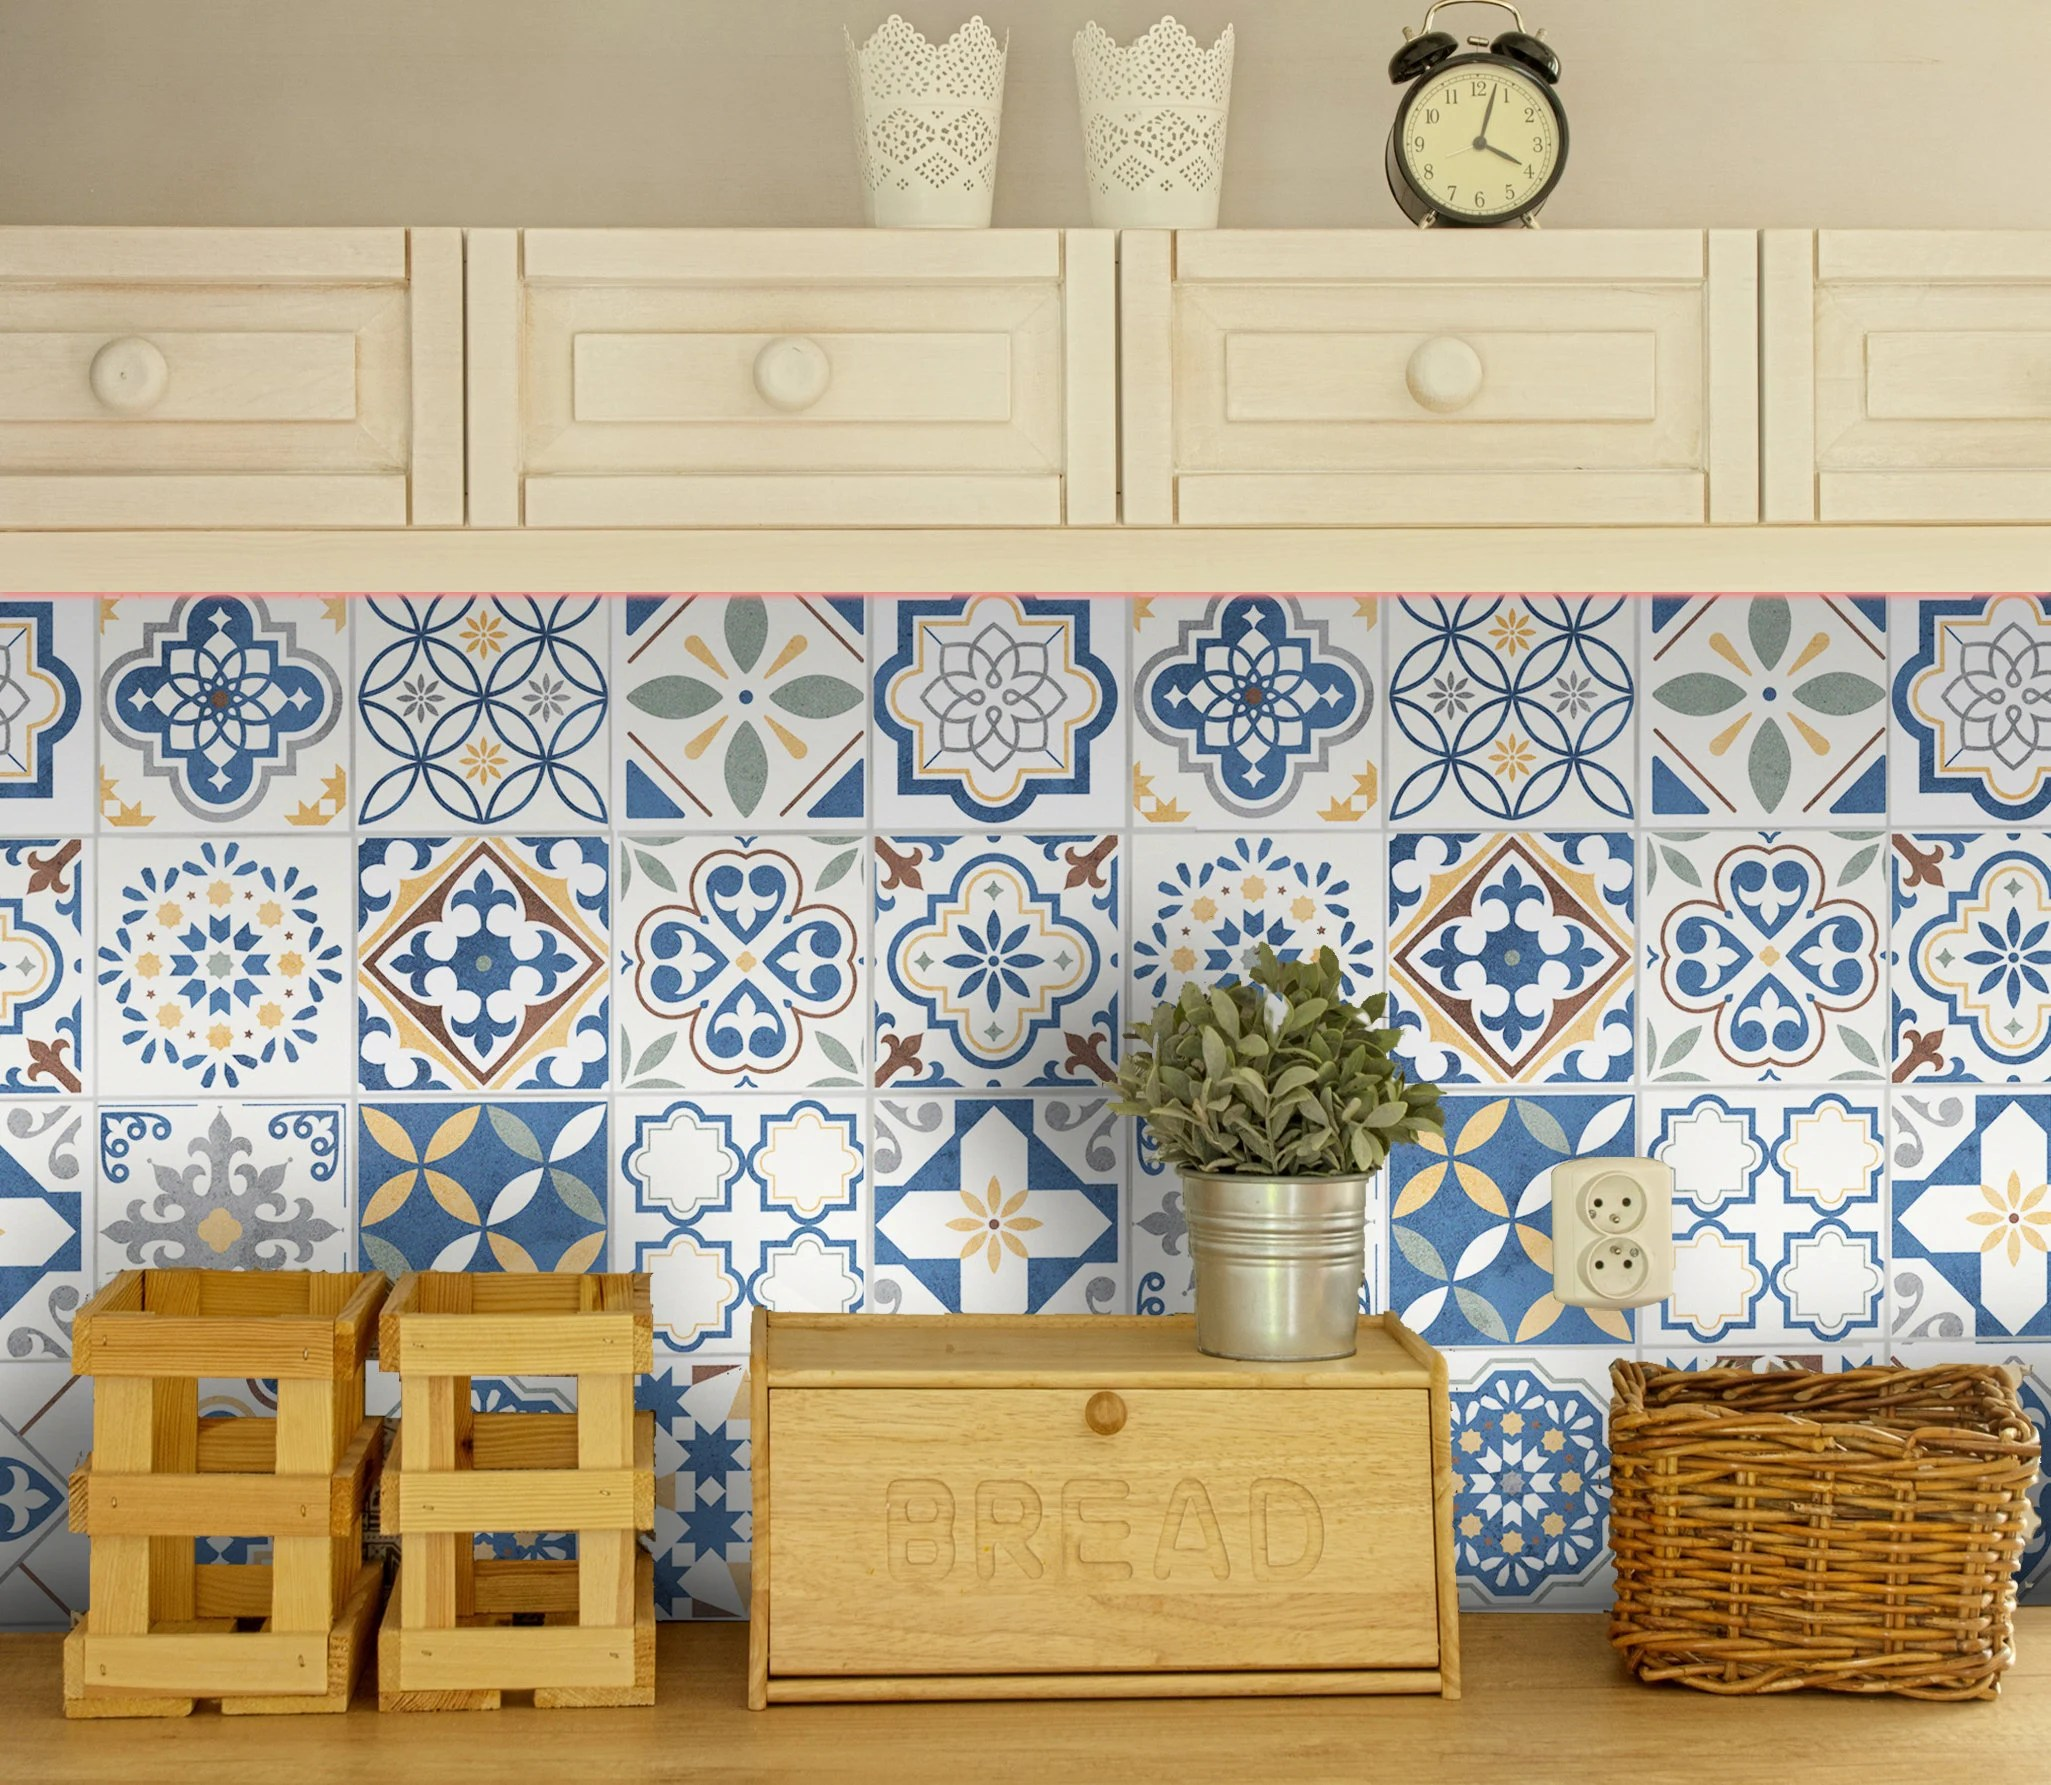 Wohnzimmer Industrial Petrol Talavera Tile Decals Azulejos Tile Stickers Heatprotected Peel Stick Vinyl Decor Kitchen Backsplash Tiles Bathroom Flooring Stair Riser